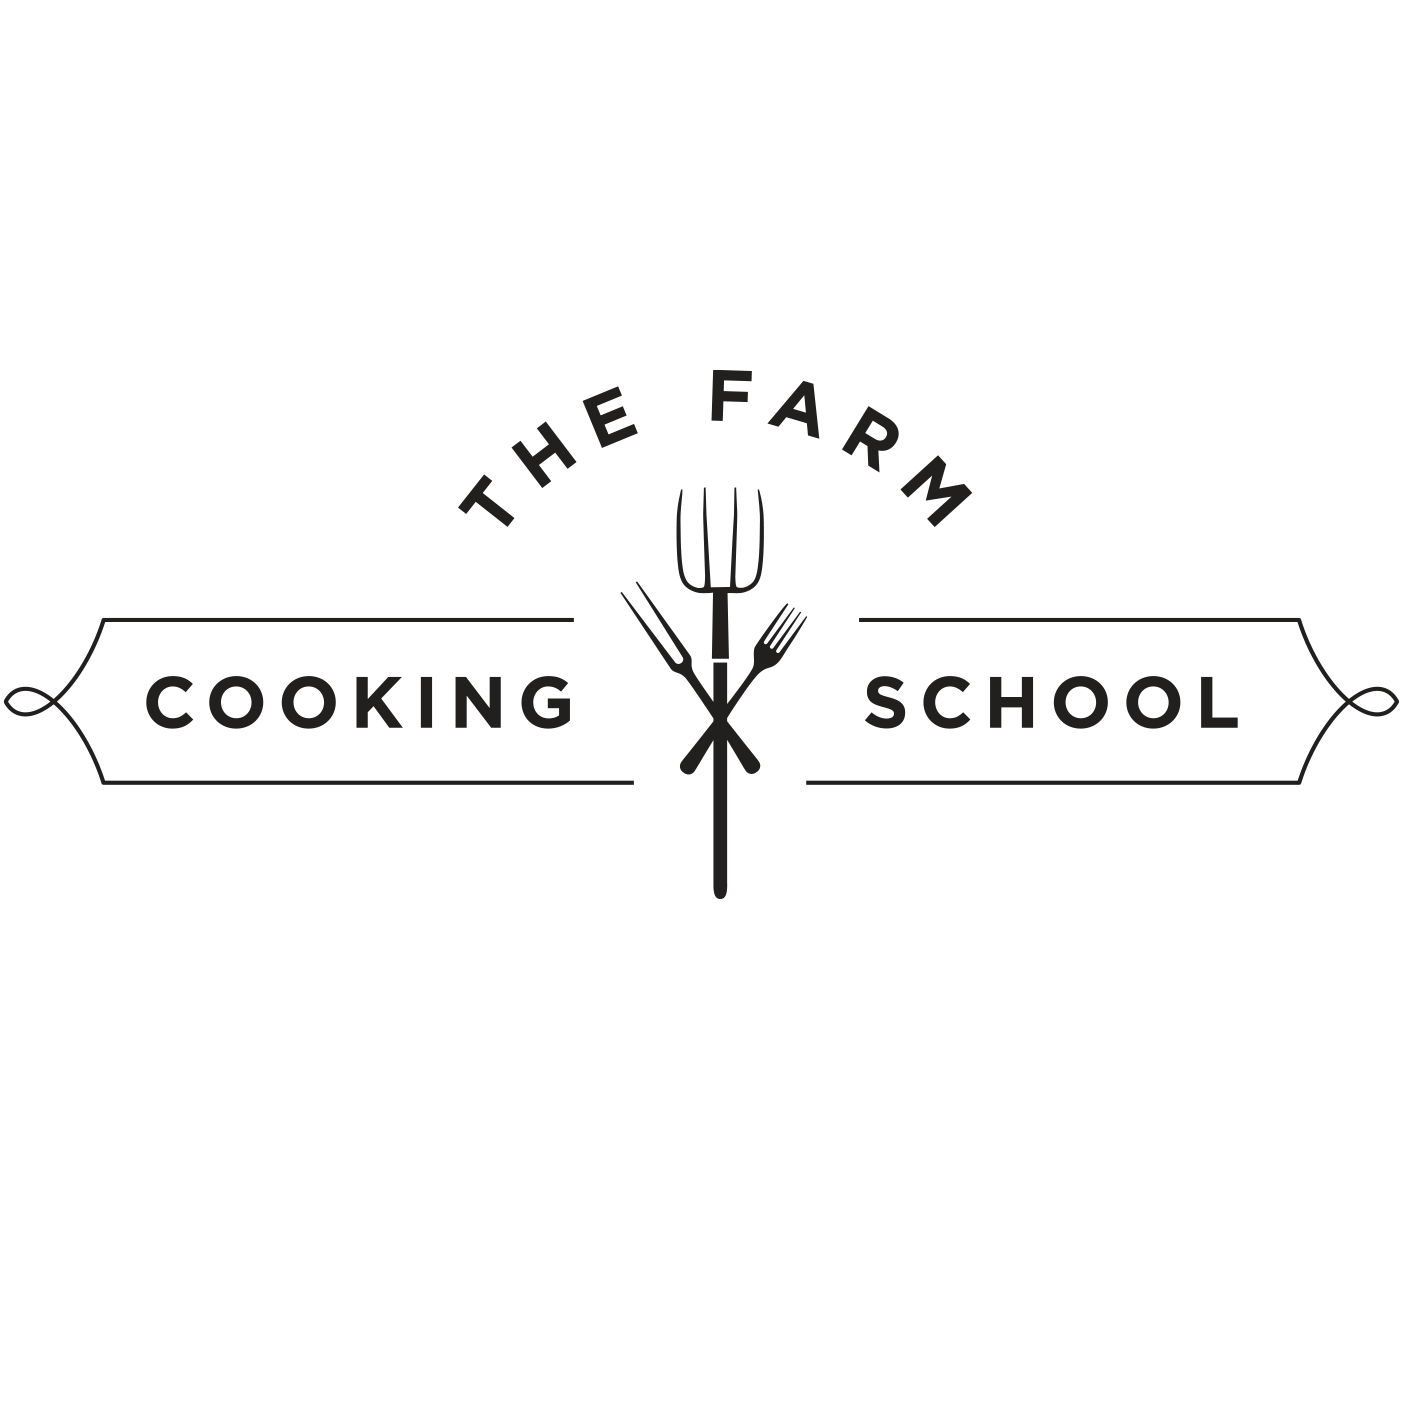 Farm-Cooking-School-01.png